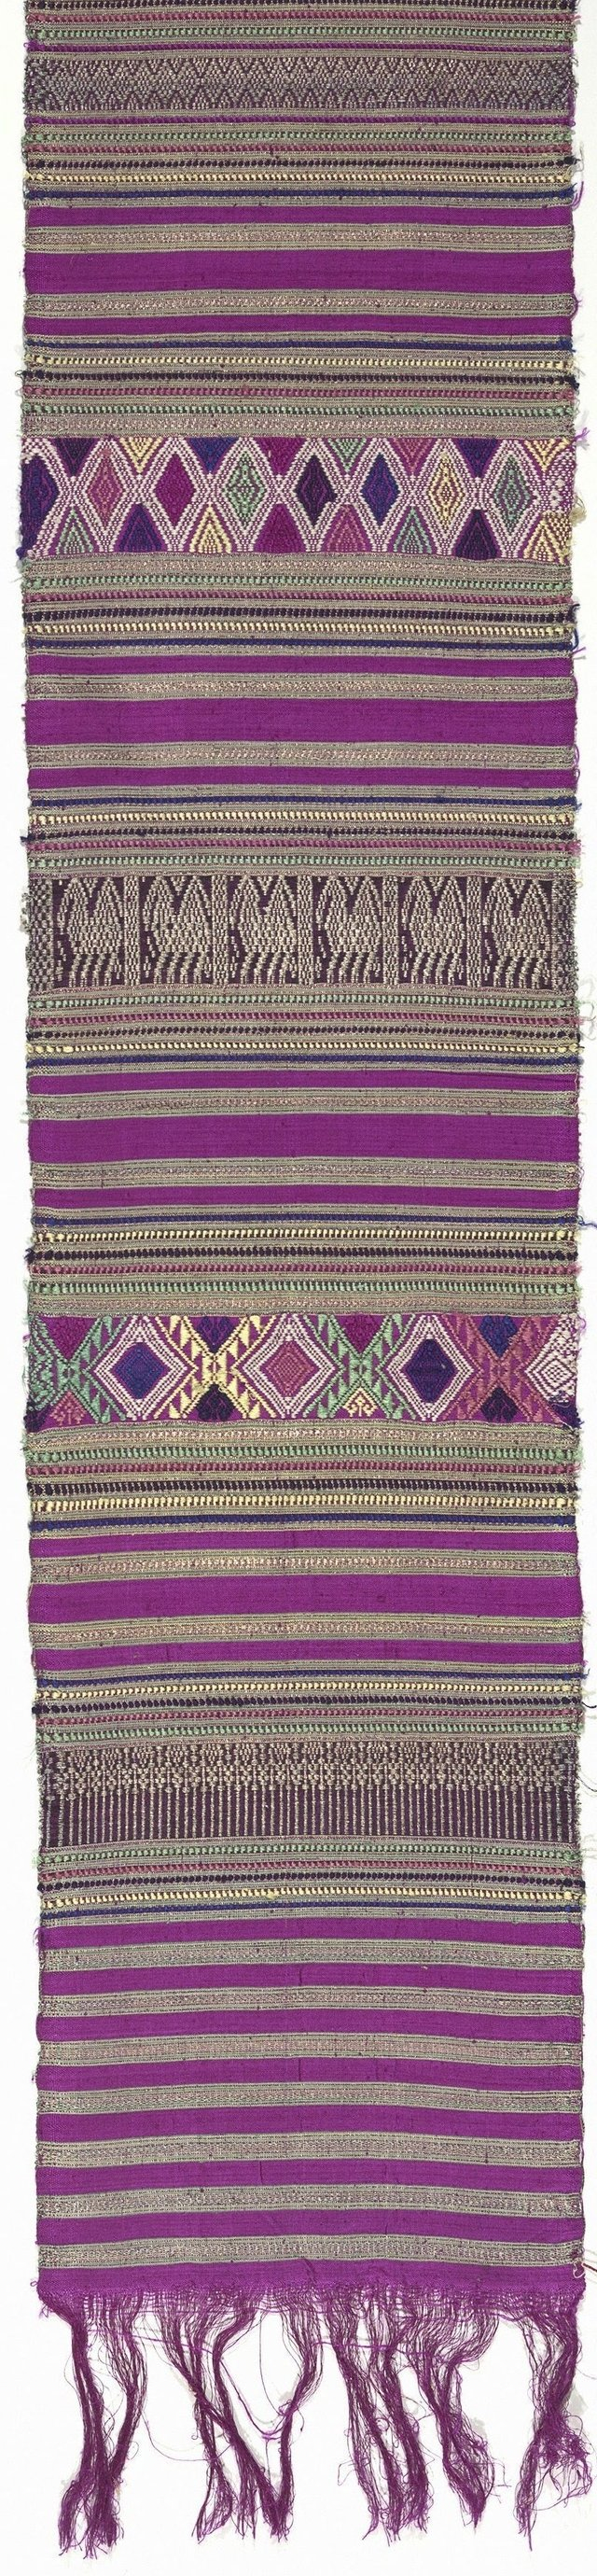 An image of Ceremonial cloth with banded geometric designs